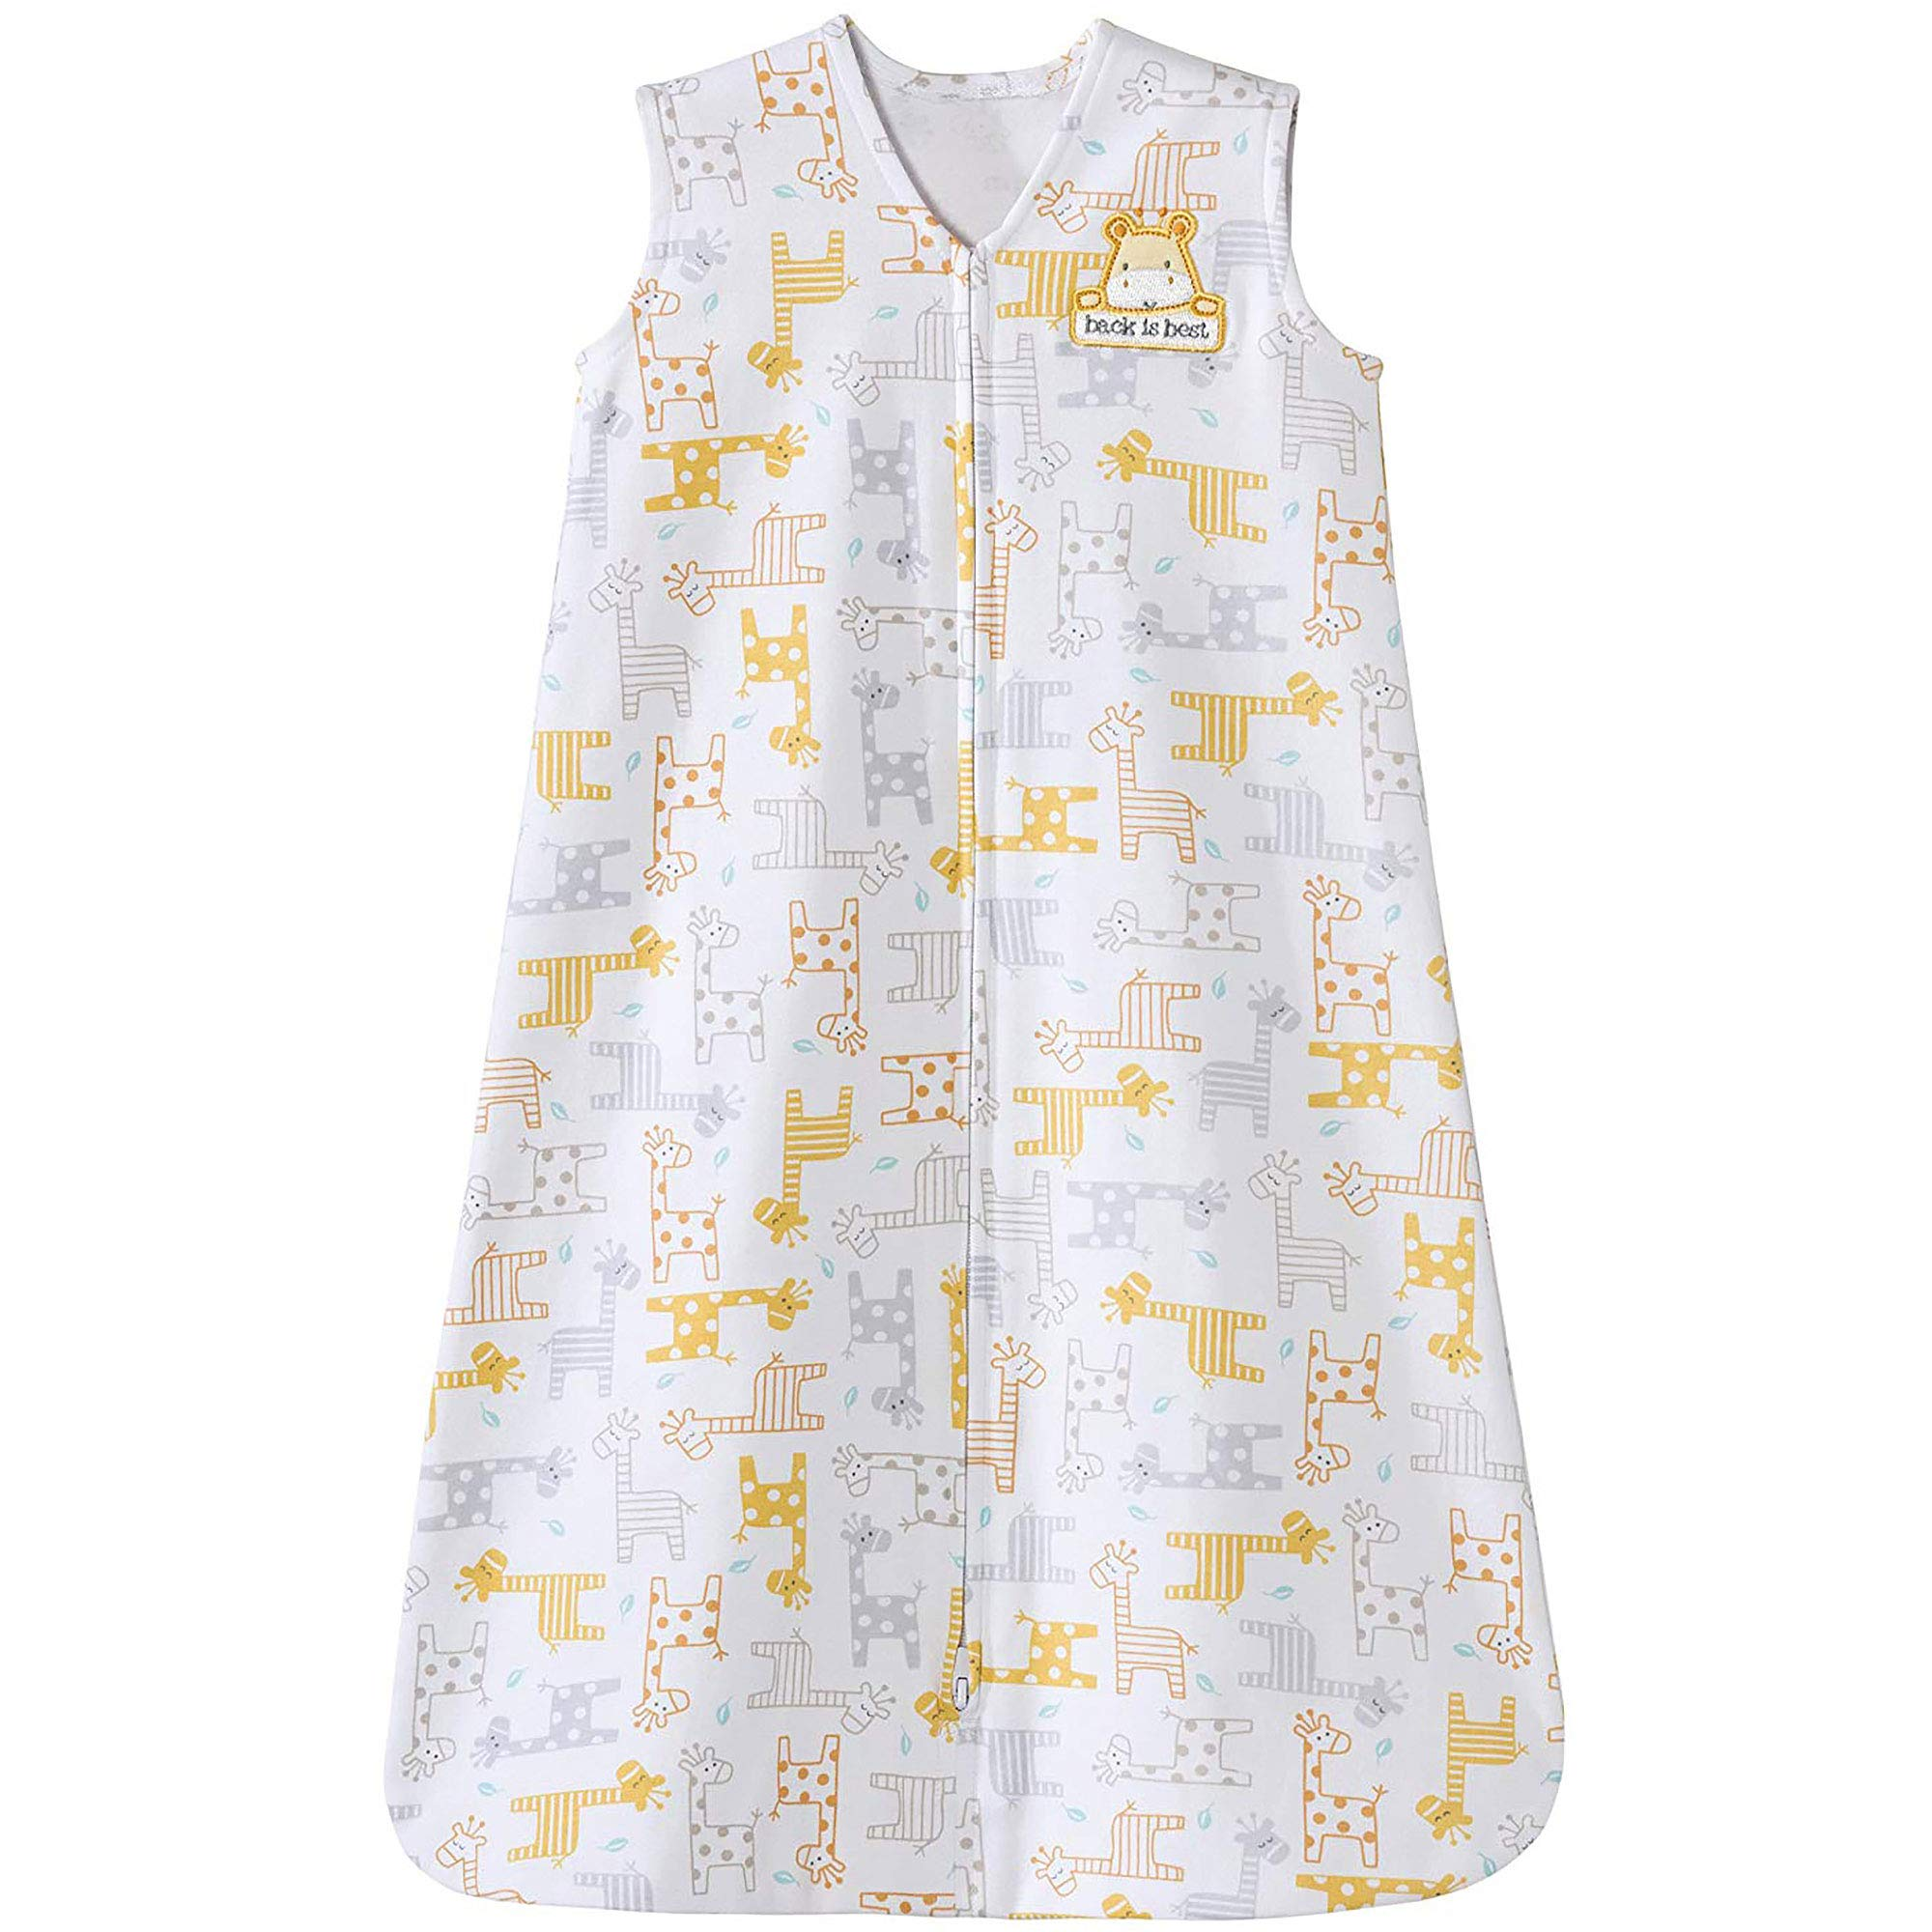 Halo Sleepsack 100% Cotton Wearable Blanket, Giraffe, Medium by Halo